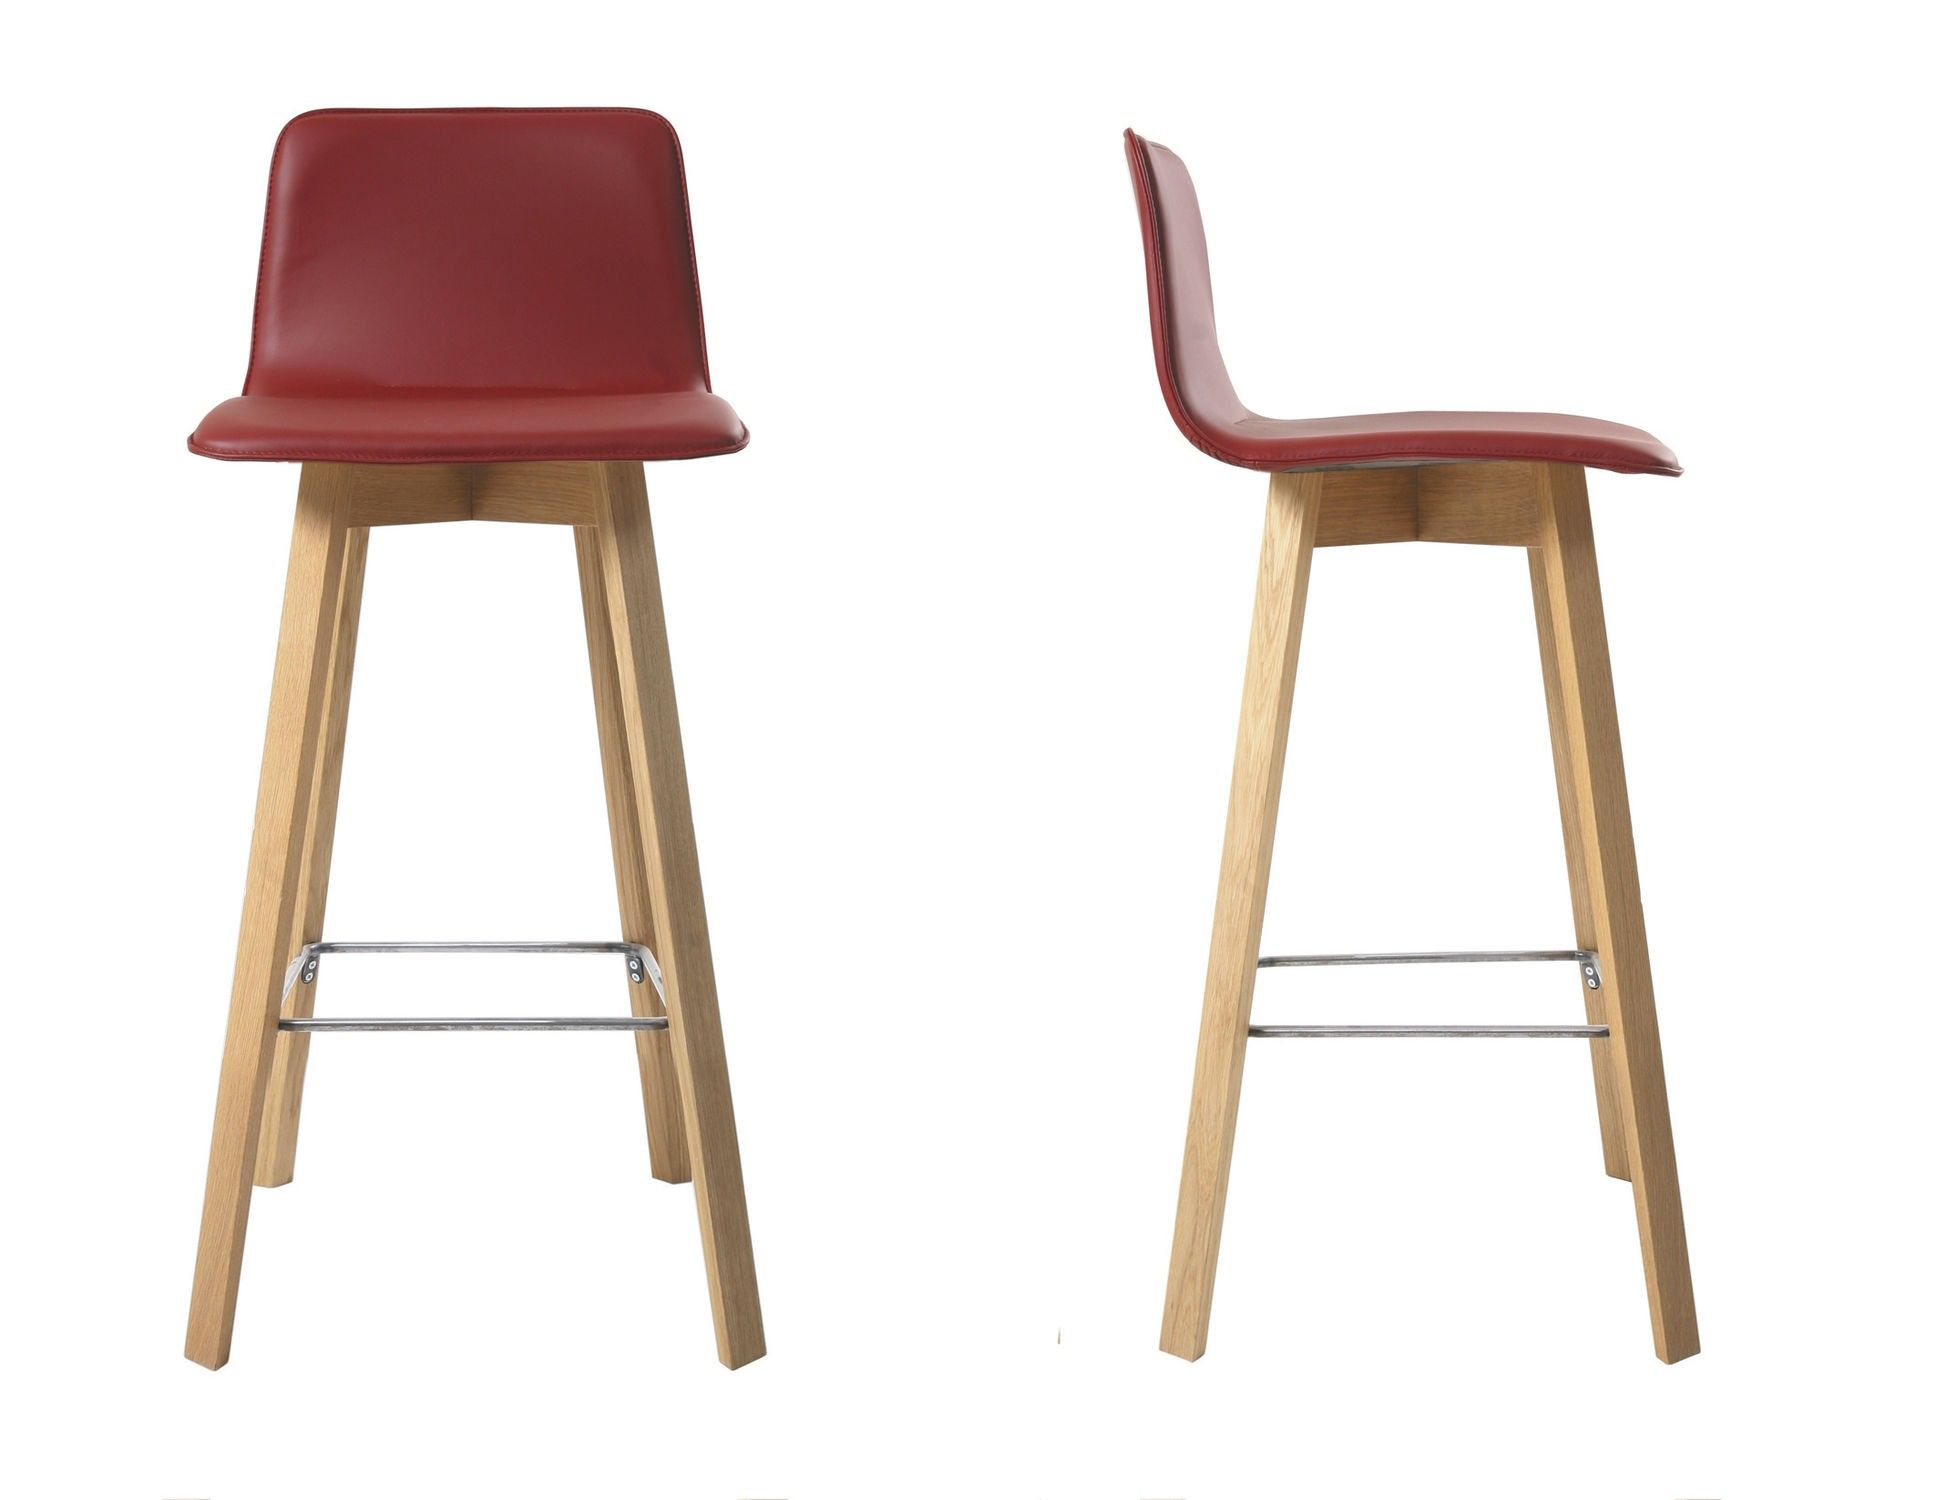 Kitchen stools with backs contemporary wooden upholstered for Counter stools with backs